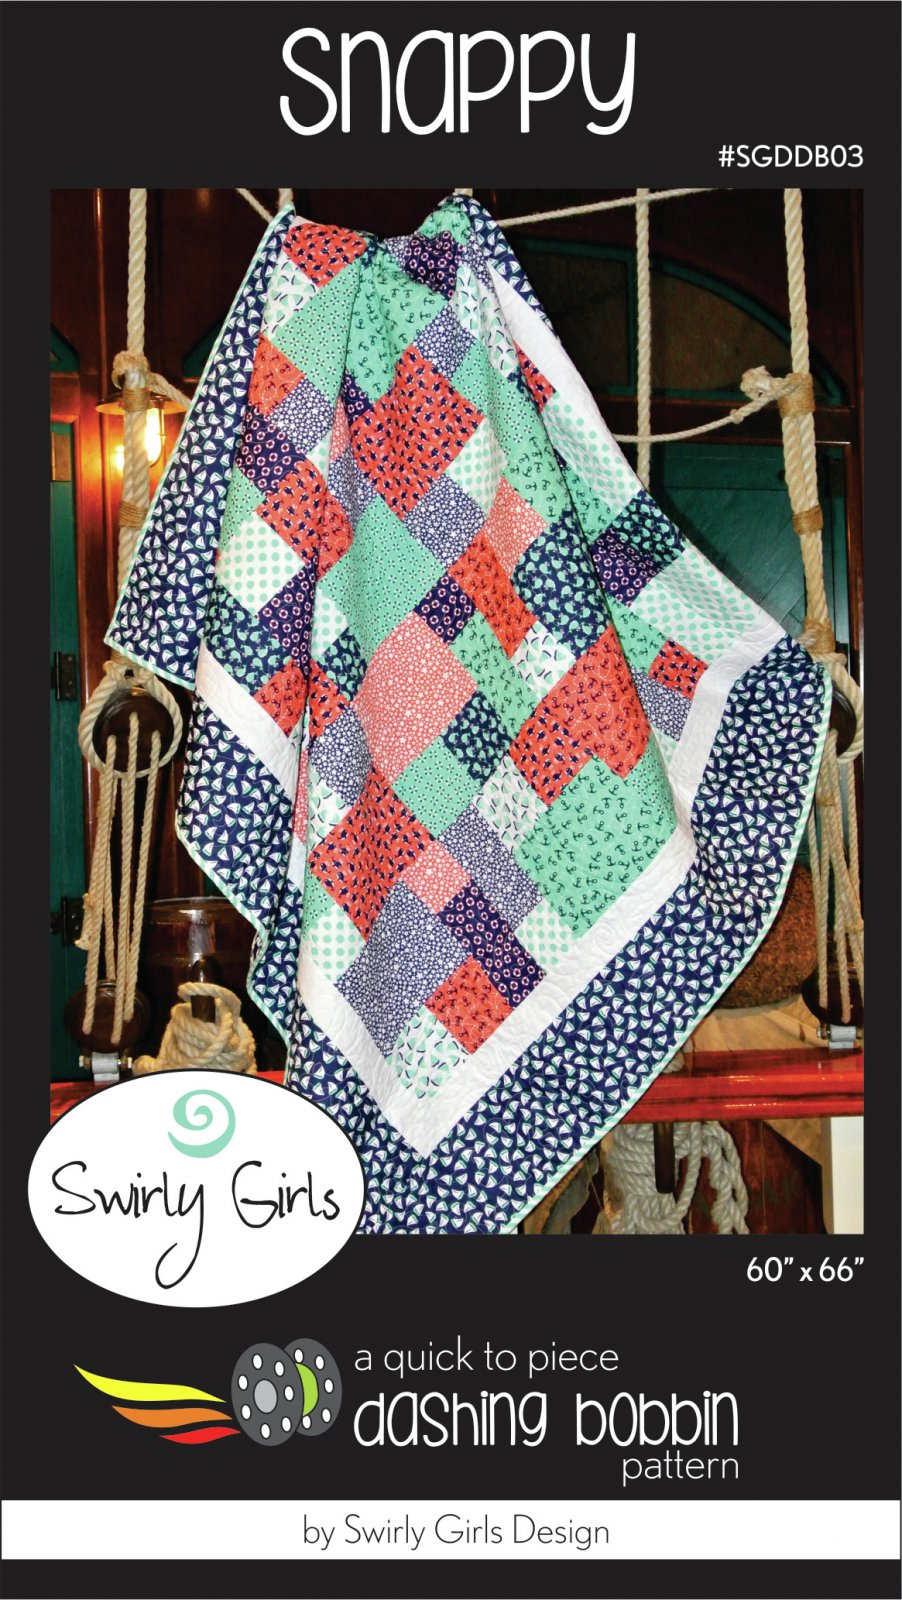 Snappy - Quick to Piece Dashing Bobbin Pattern - Swirly Girls Design